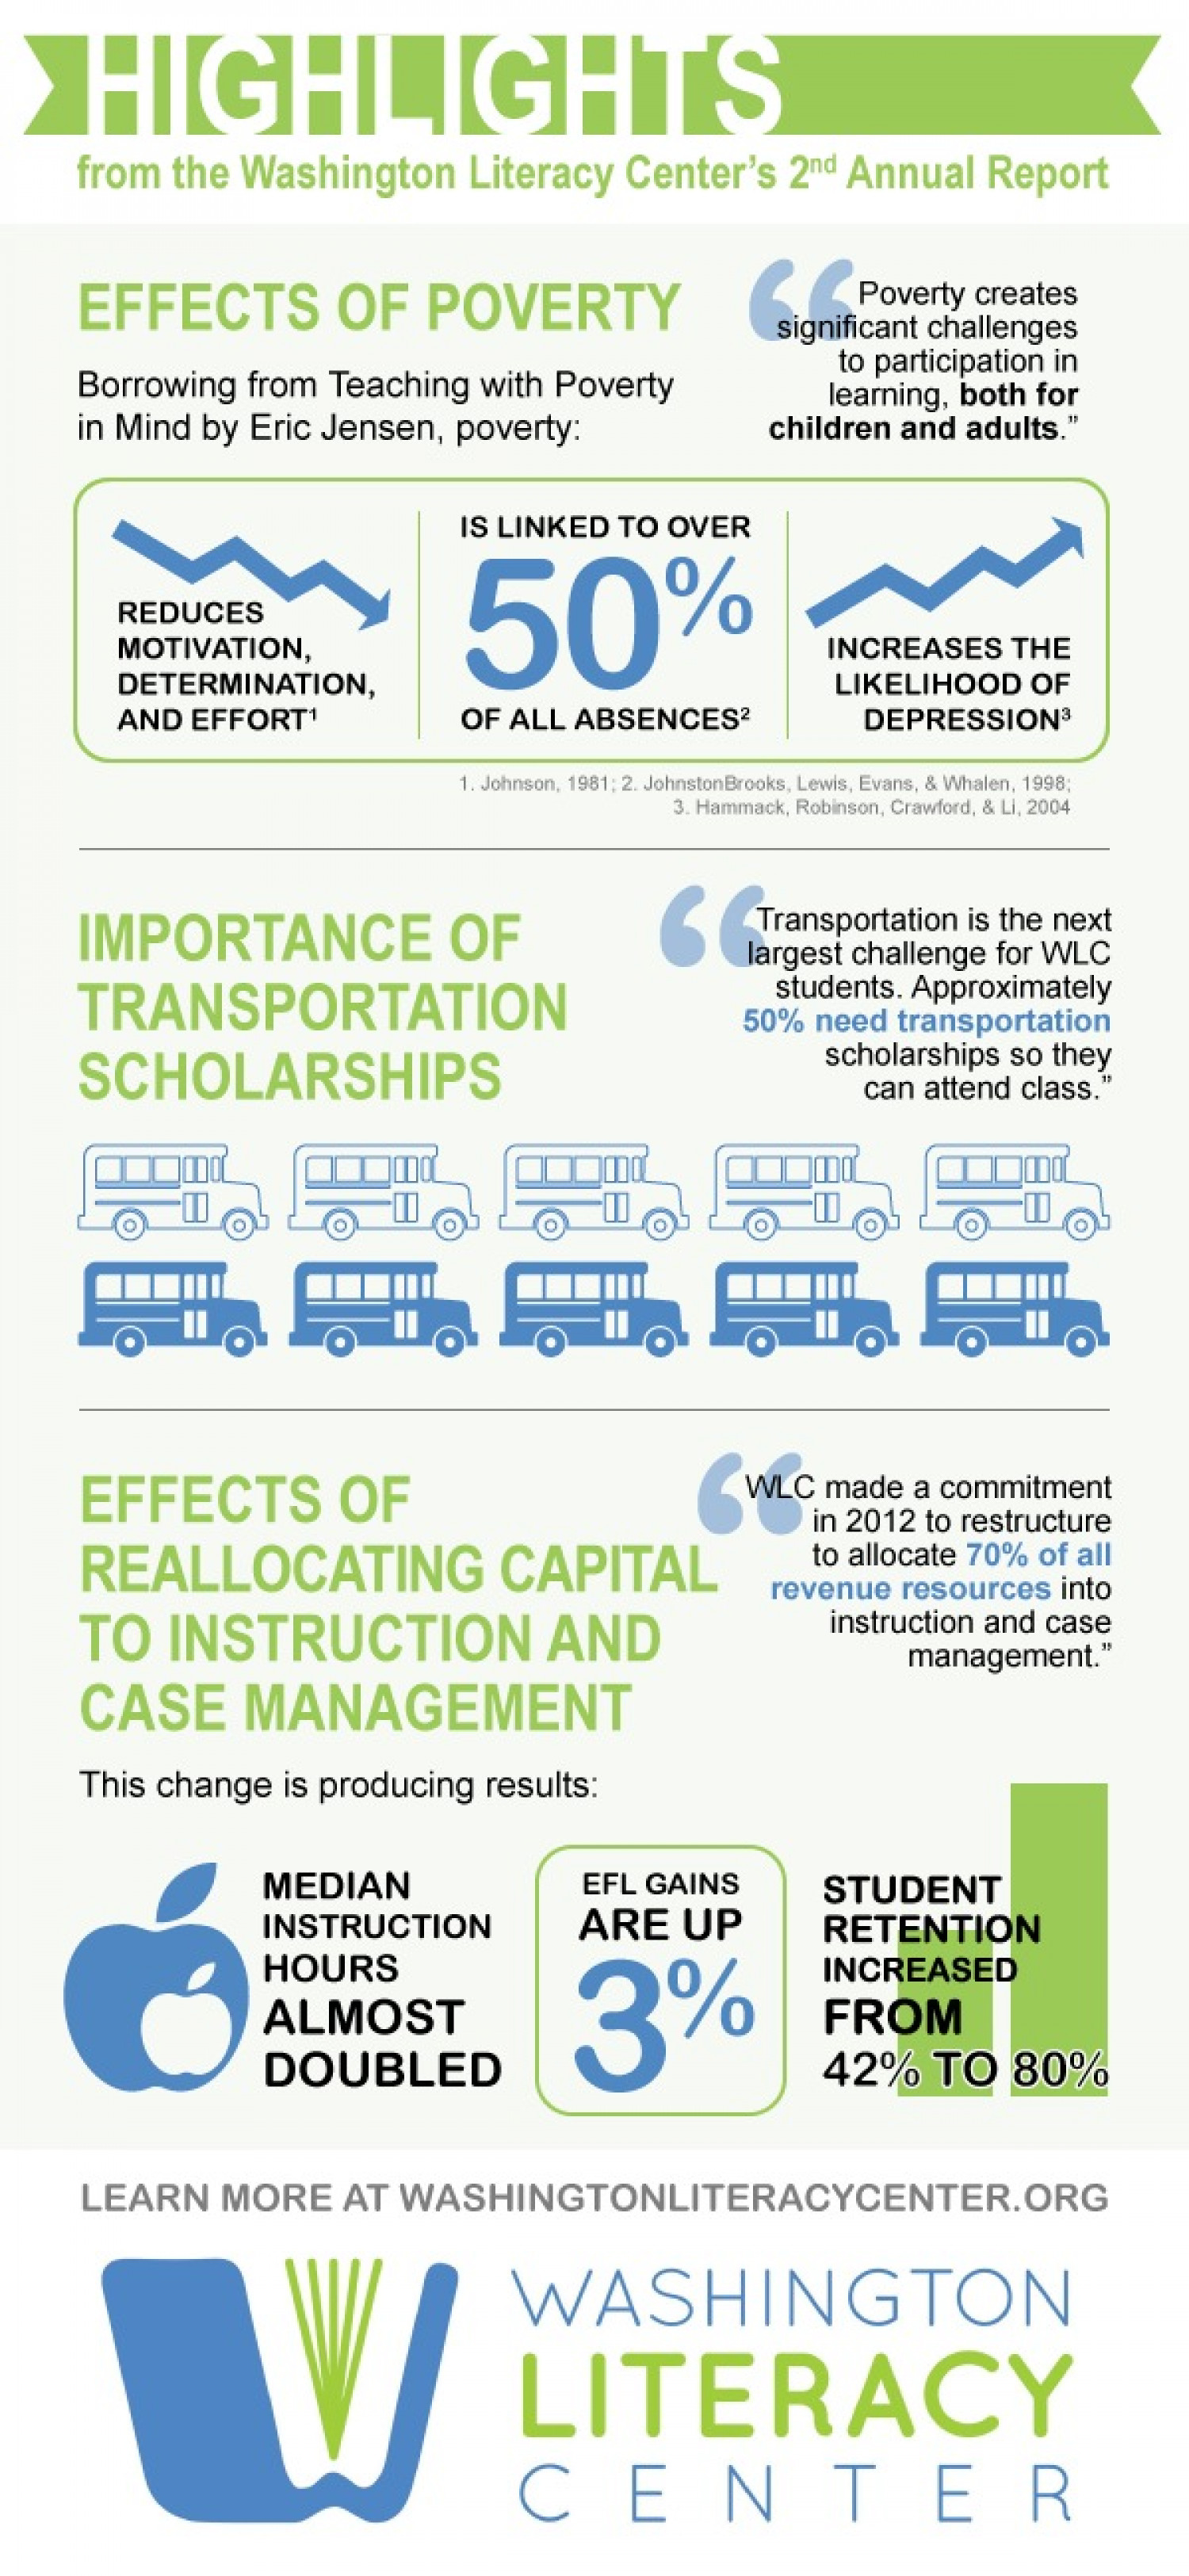 Highlights from the Washington Literacy Center's 2nd Annual Report Infographic